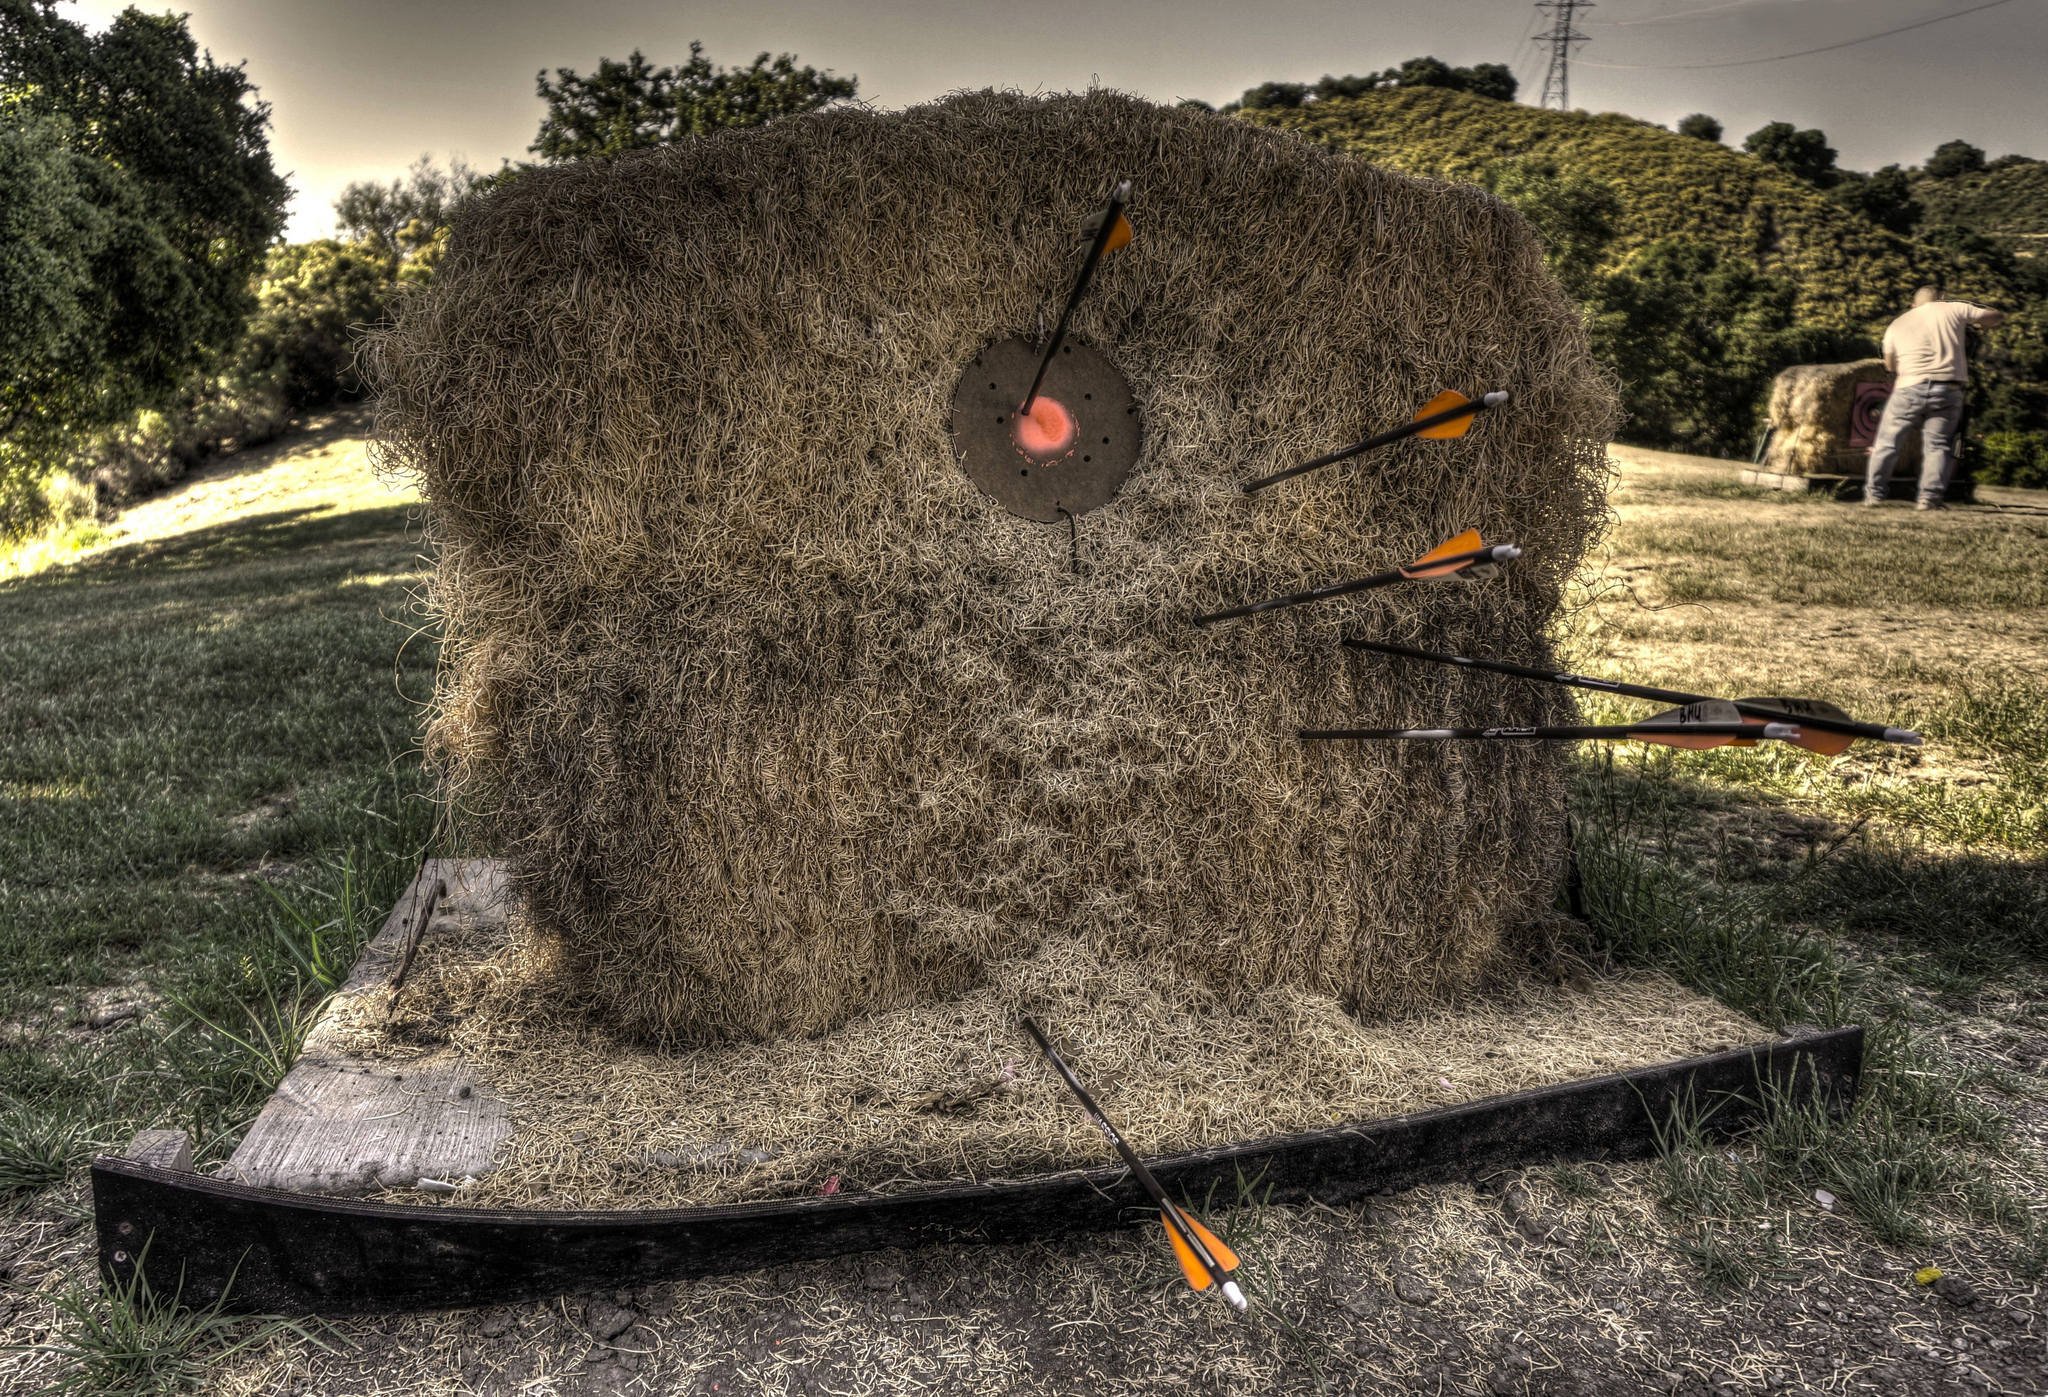 Target at archery range  by Peter Thoeny